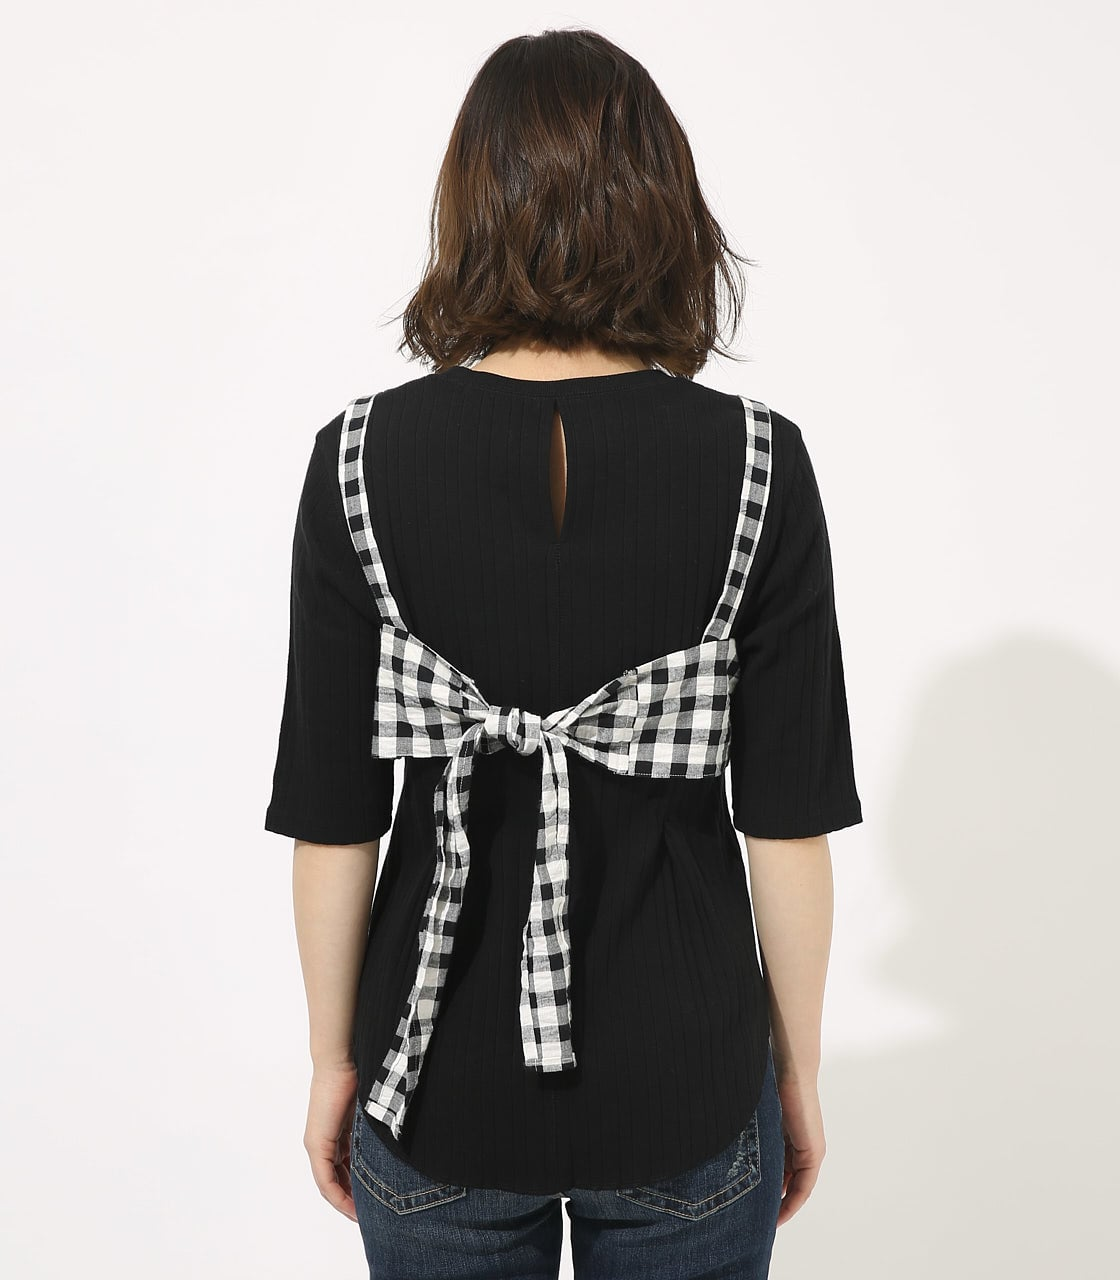 【AZUL BY MOUSSY】GINGHAM CHECK BUSTIER TOPS 【MOOK49掲載 90054】 詳細画像 柄BLK 6